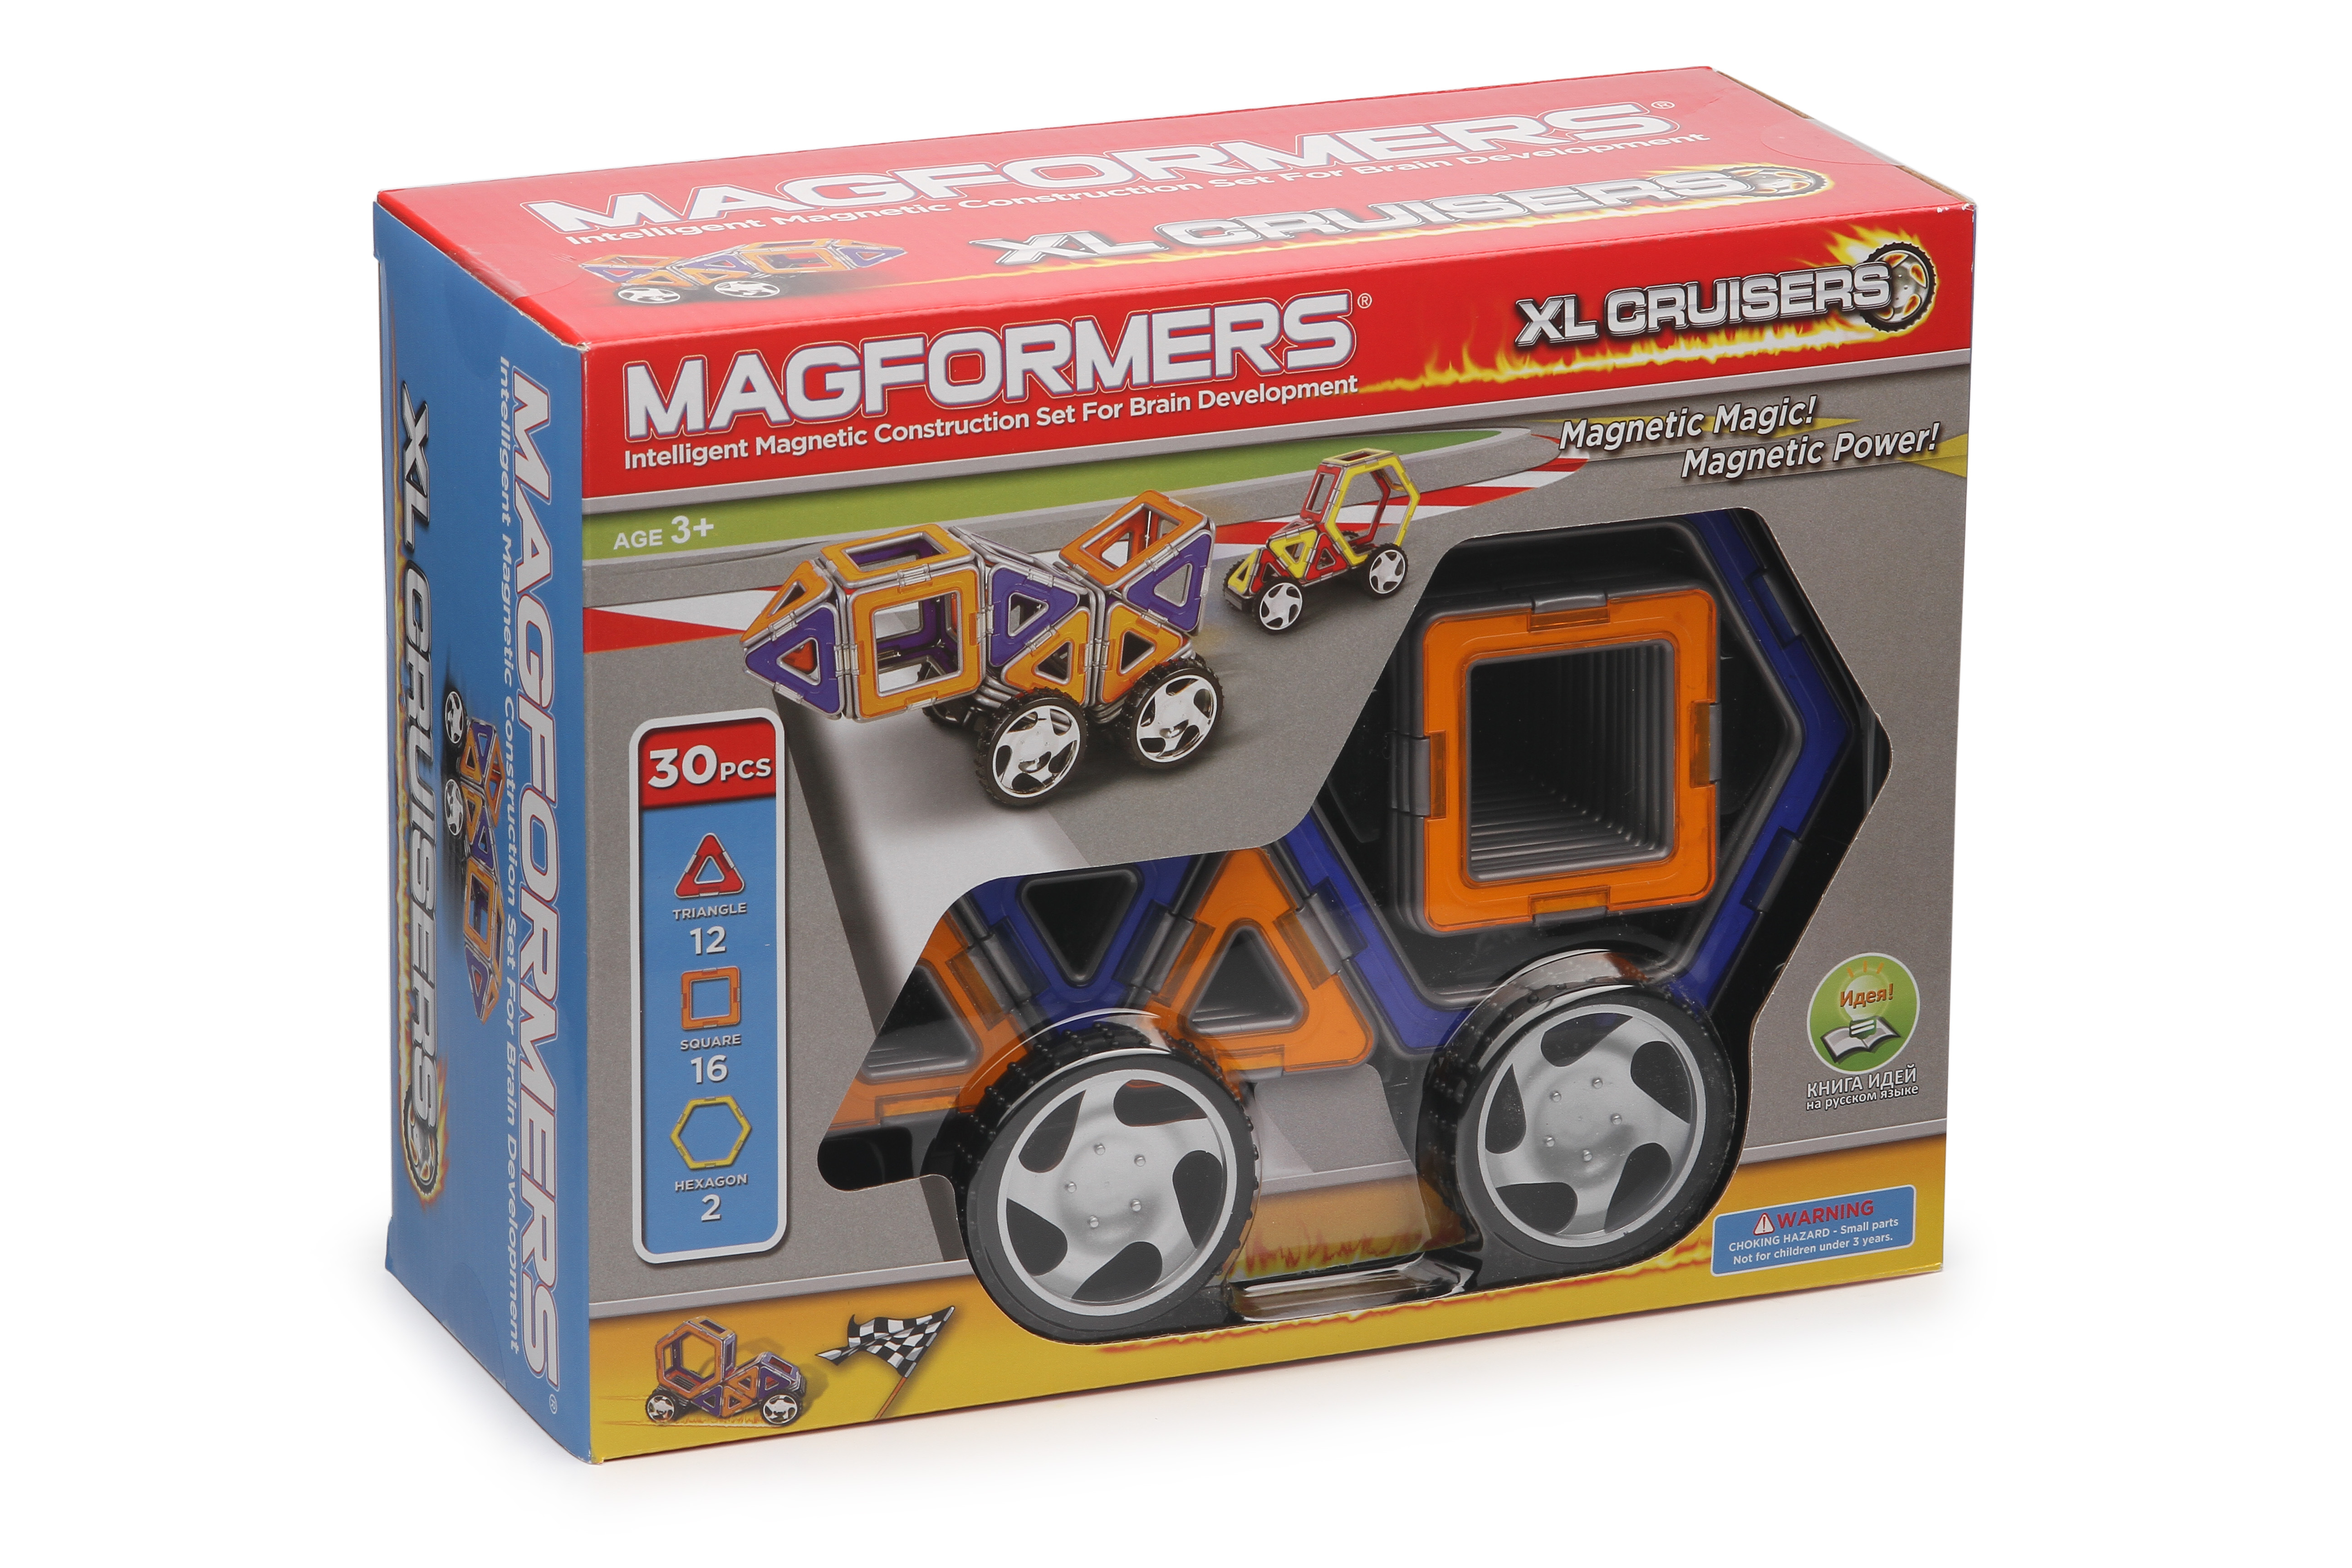 ����������� Magformers XL Cruisers